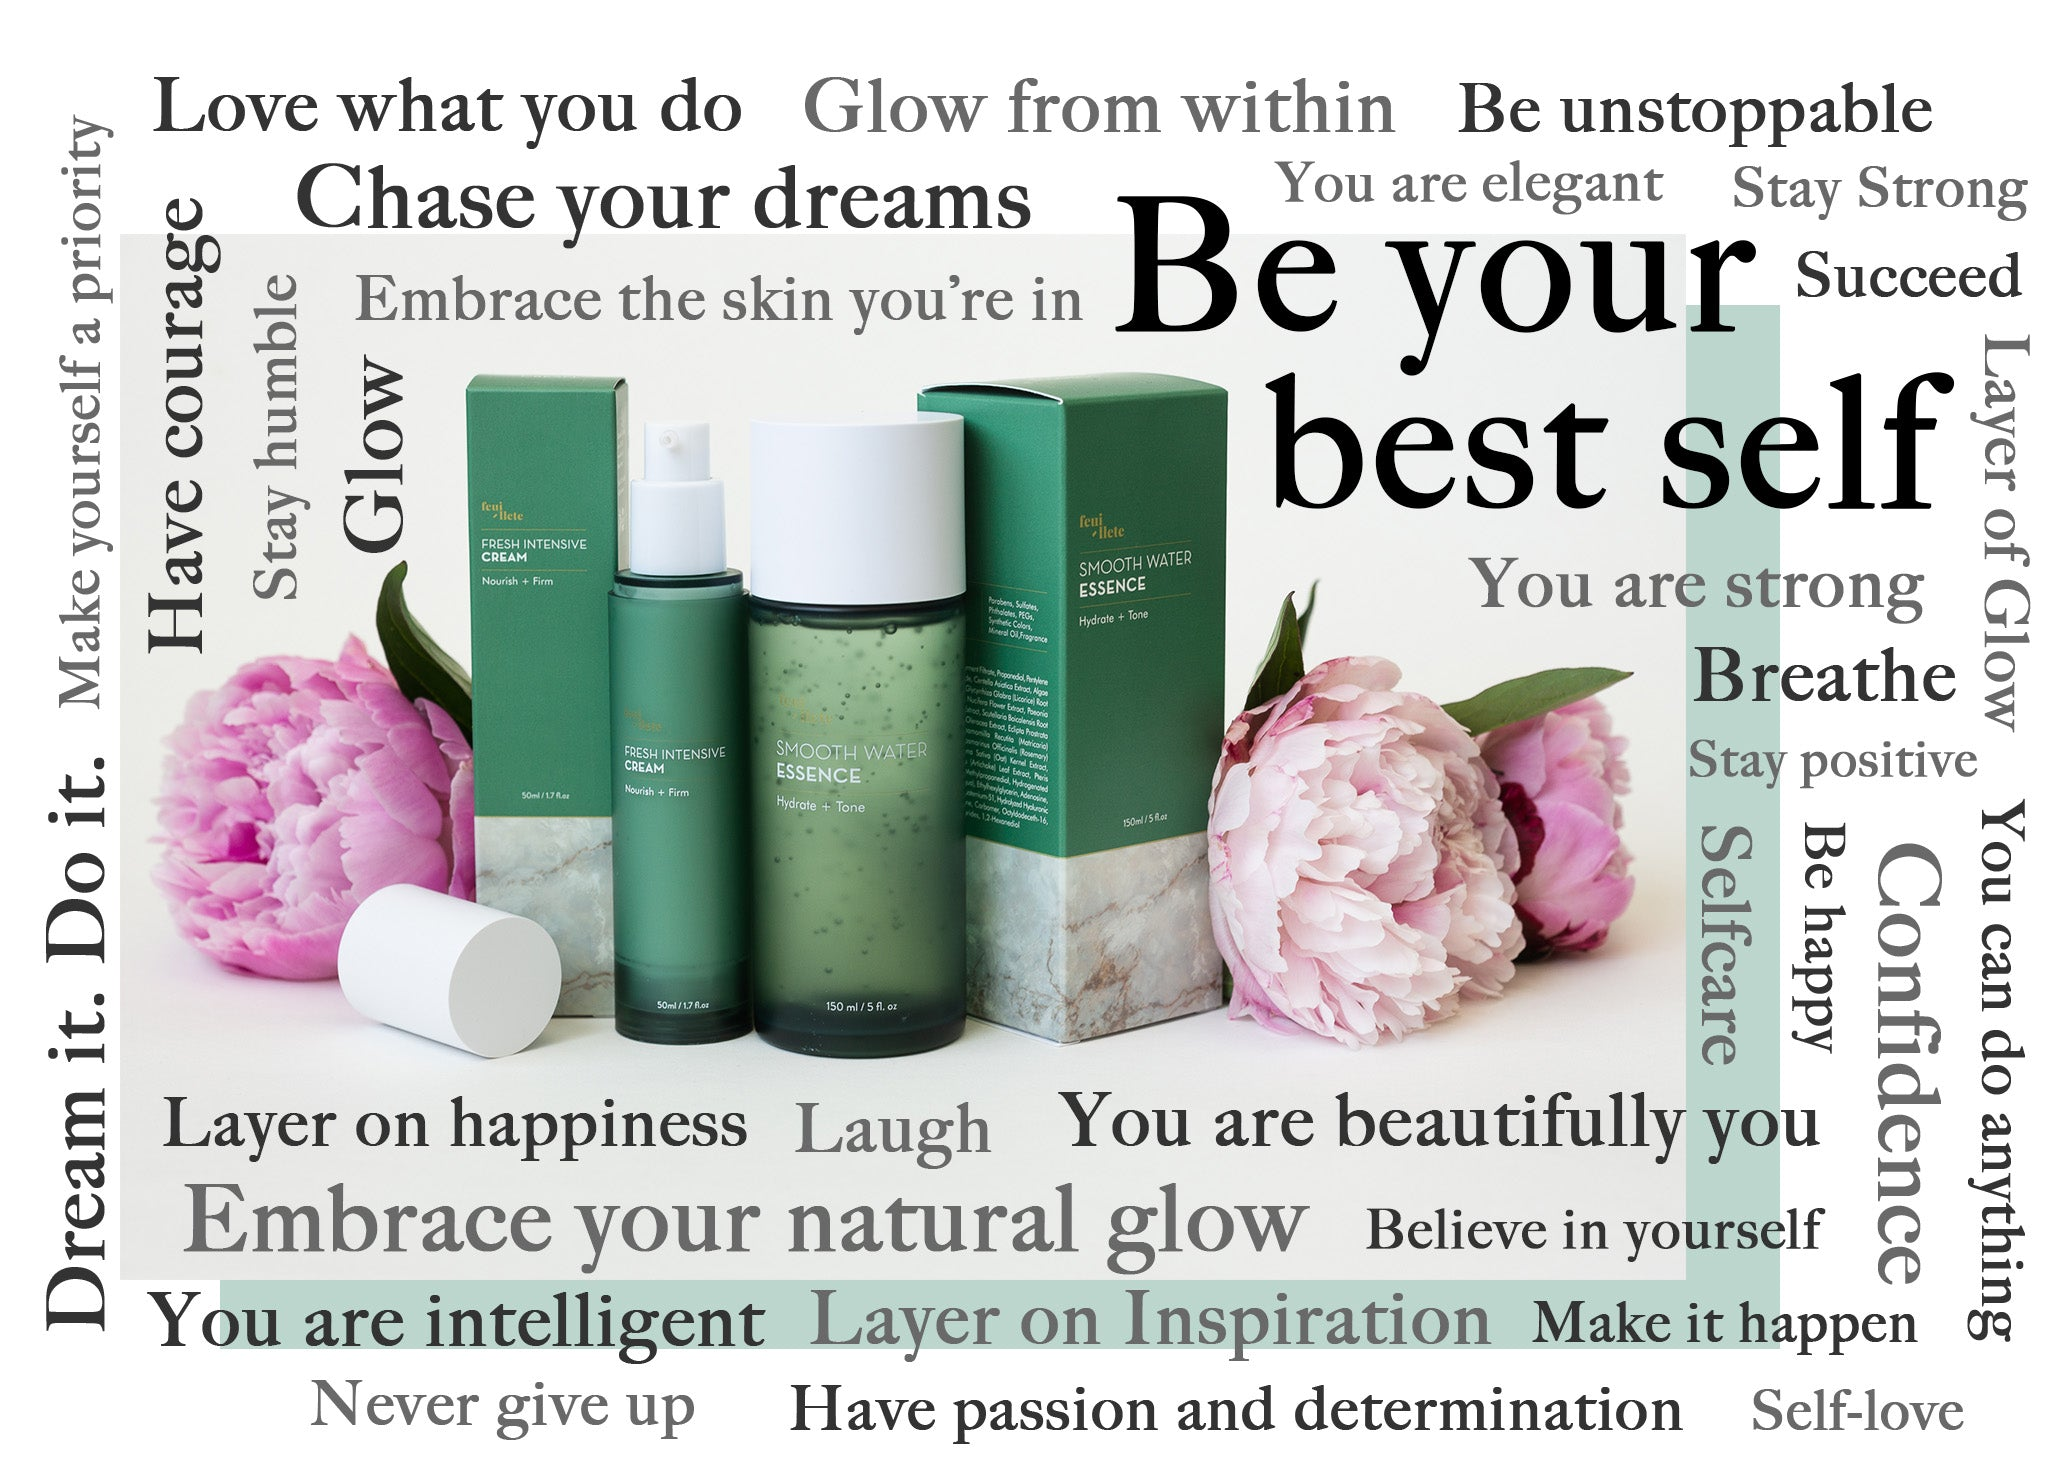 Be your best self, Feuillete products and inspirational phrases